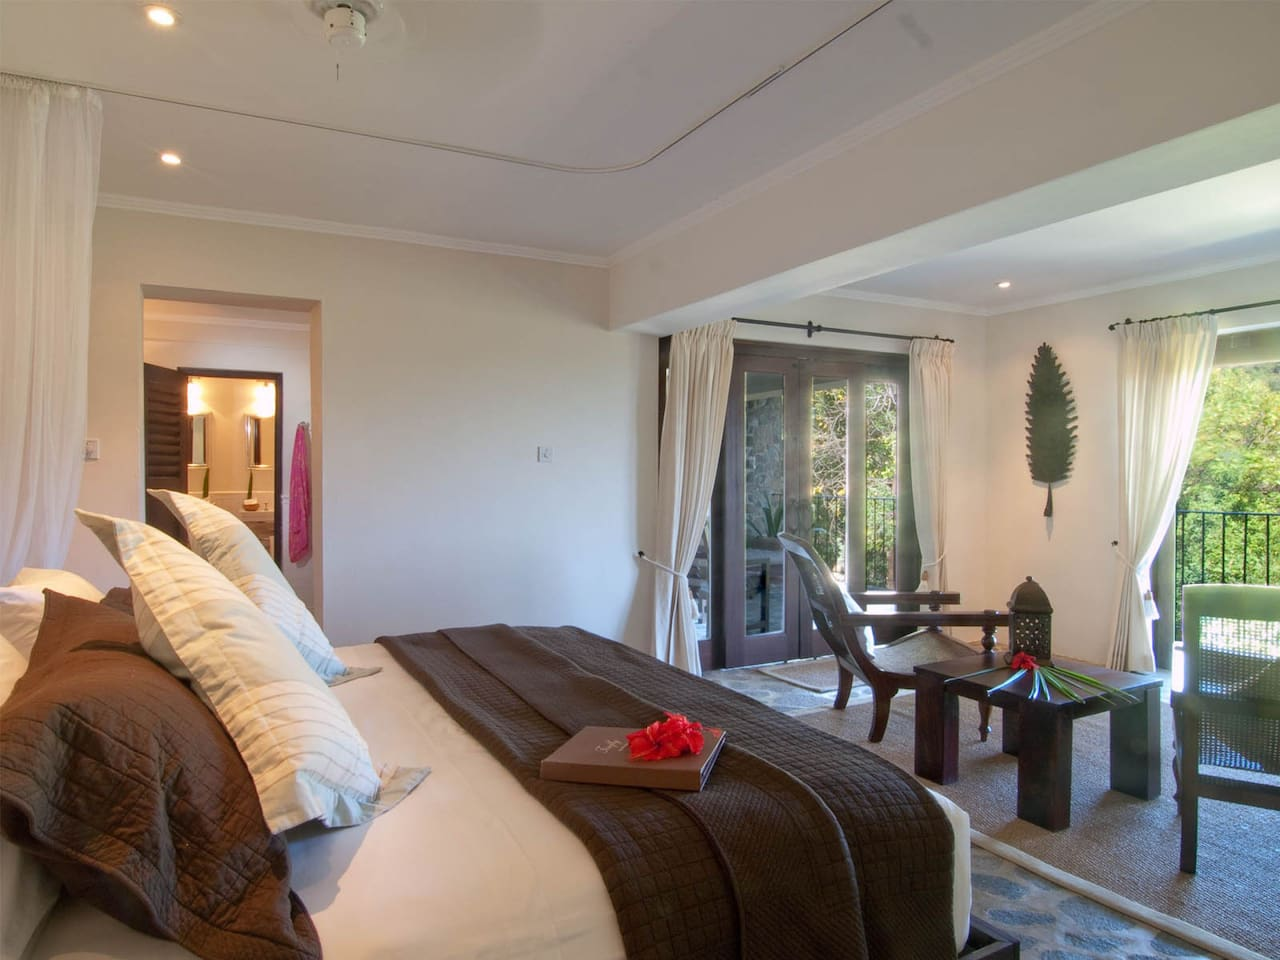 King sized bed, luxury linens and amenities and a private balcony with beautiful views.